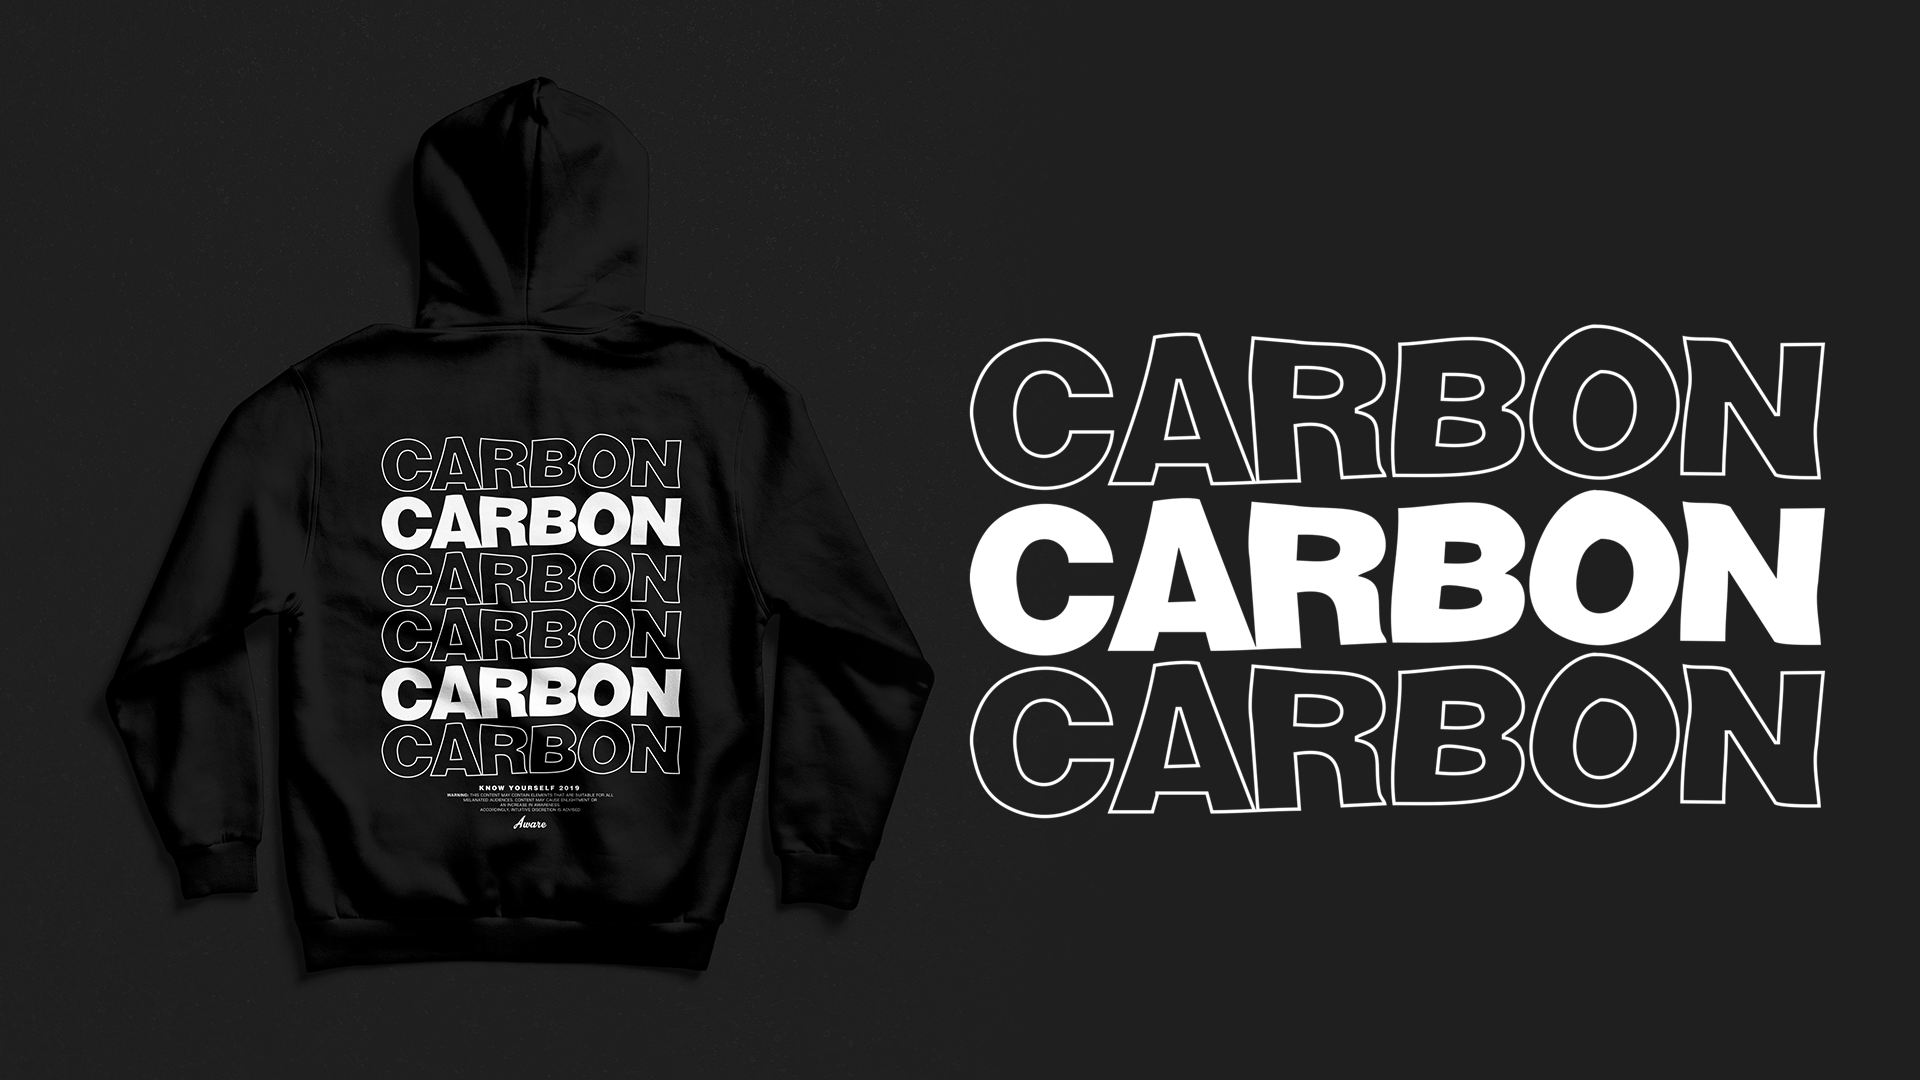 Carbon Collection - After stumbling upon very interesting research, the element carbon became very fascinating to me. Upon my explanation of my research and discovery, the owners wanted to implement it into a signature line. The design features the now overly saturated repetitive text combined with some outline type